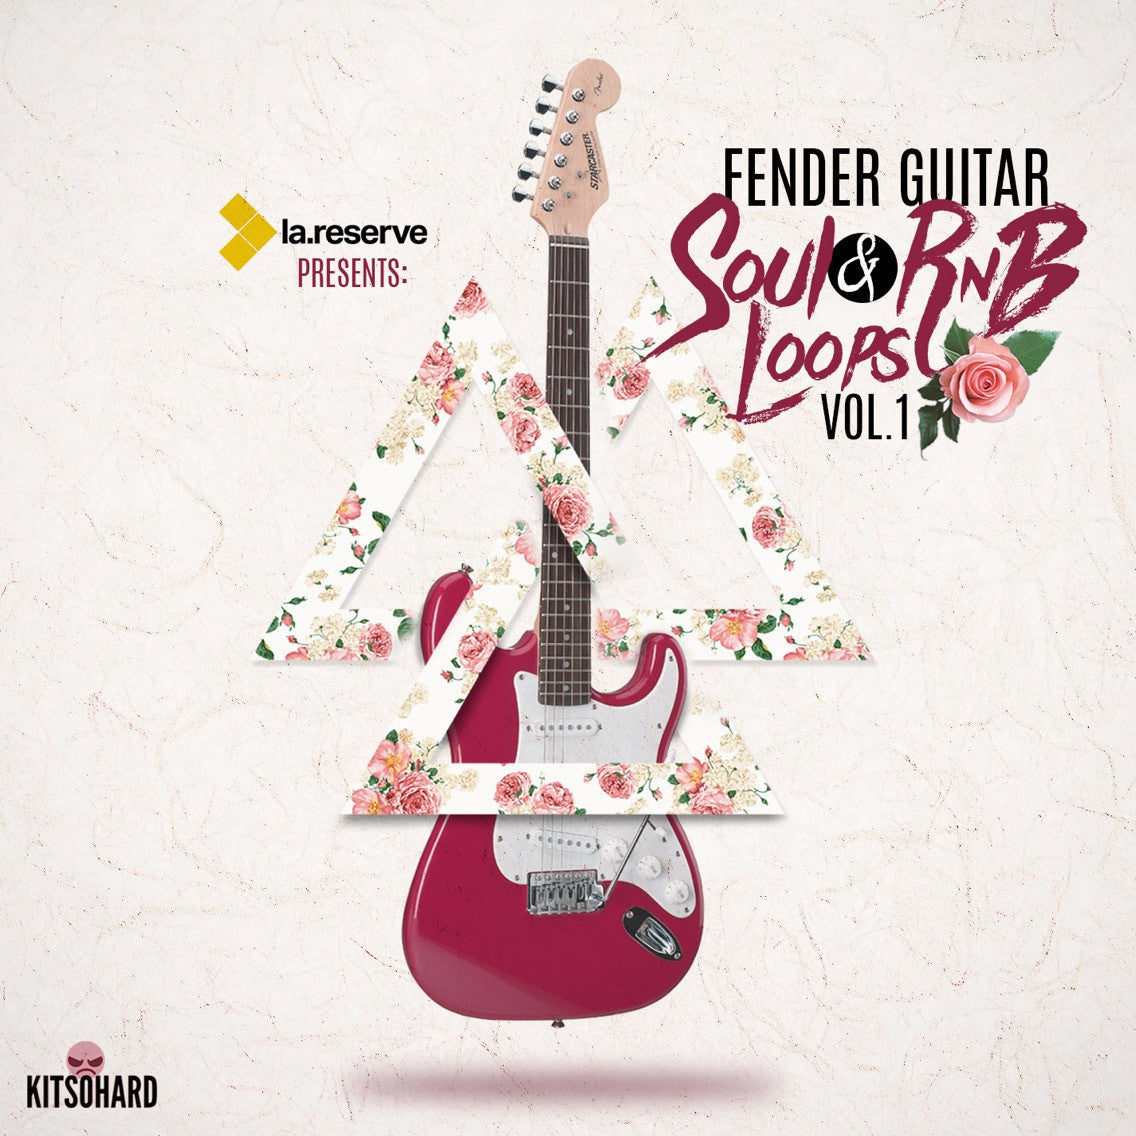 LA Reserve: Fender Guitar Soul Licks & Loops VOL. 1